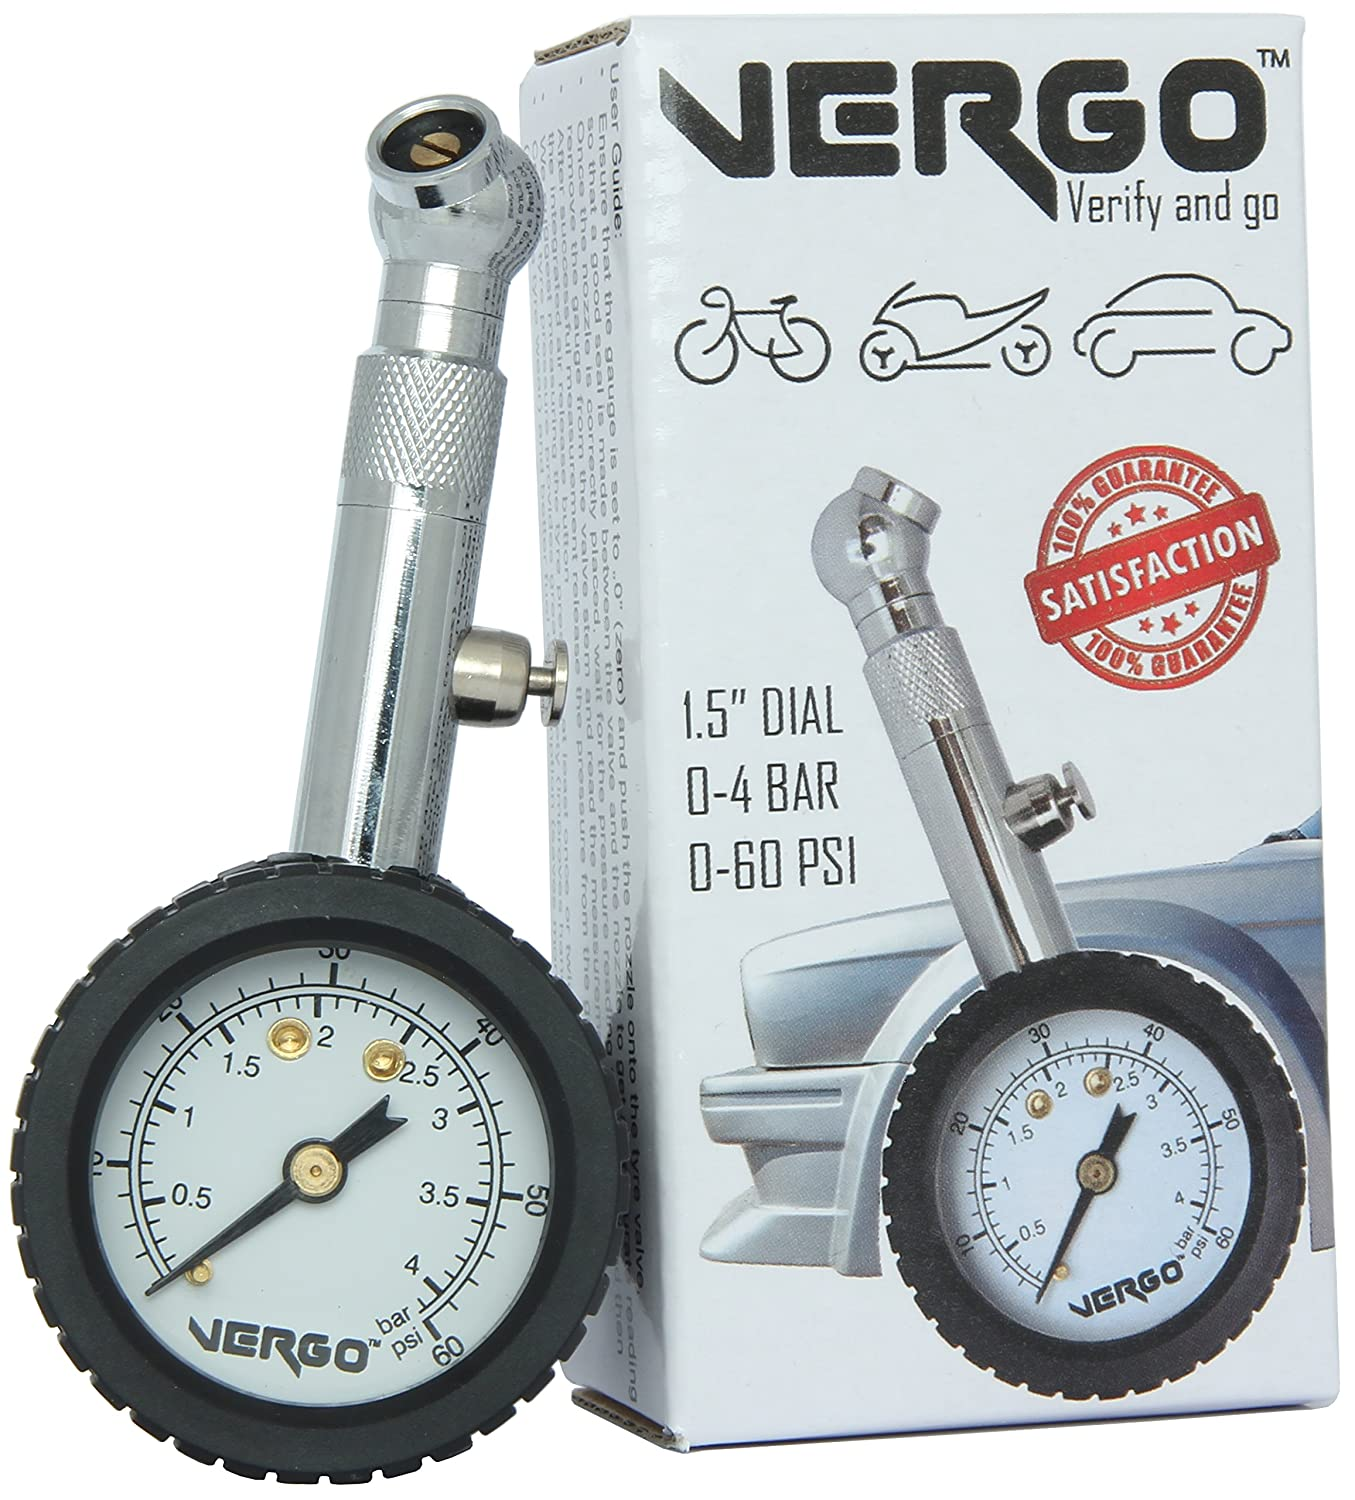 VERGO Tyre Pressure Gauge Pressure Hold /& Reset Button-Car Heavy Duty Dual Scale 0-60 PSI// 0-4 BAR 1.5 inch diameter head 360/° Adjustable Swivel Motorbike-Easy to Use-No Batteries Required